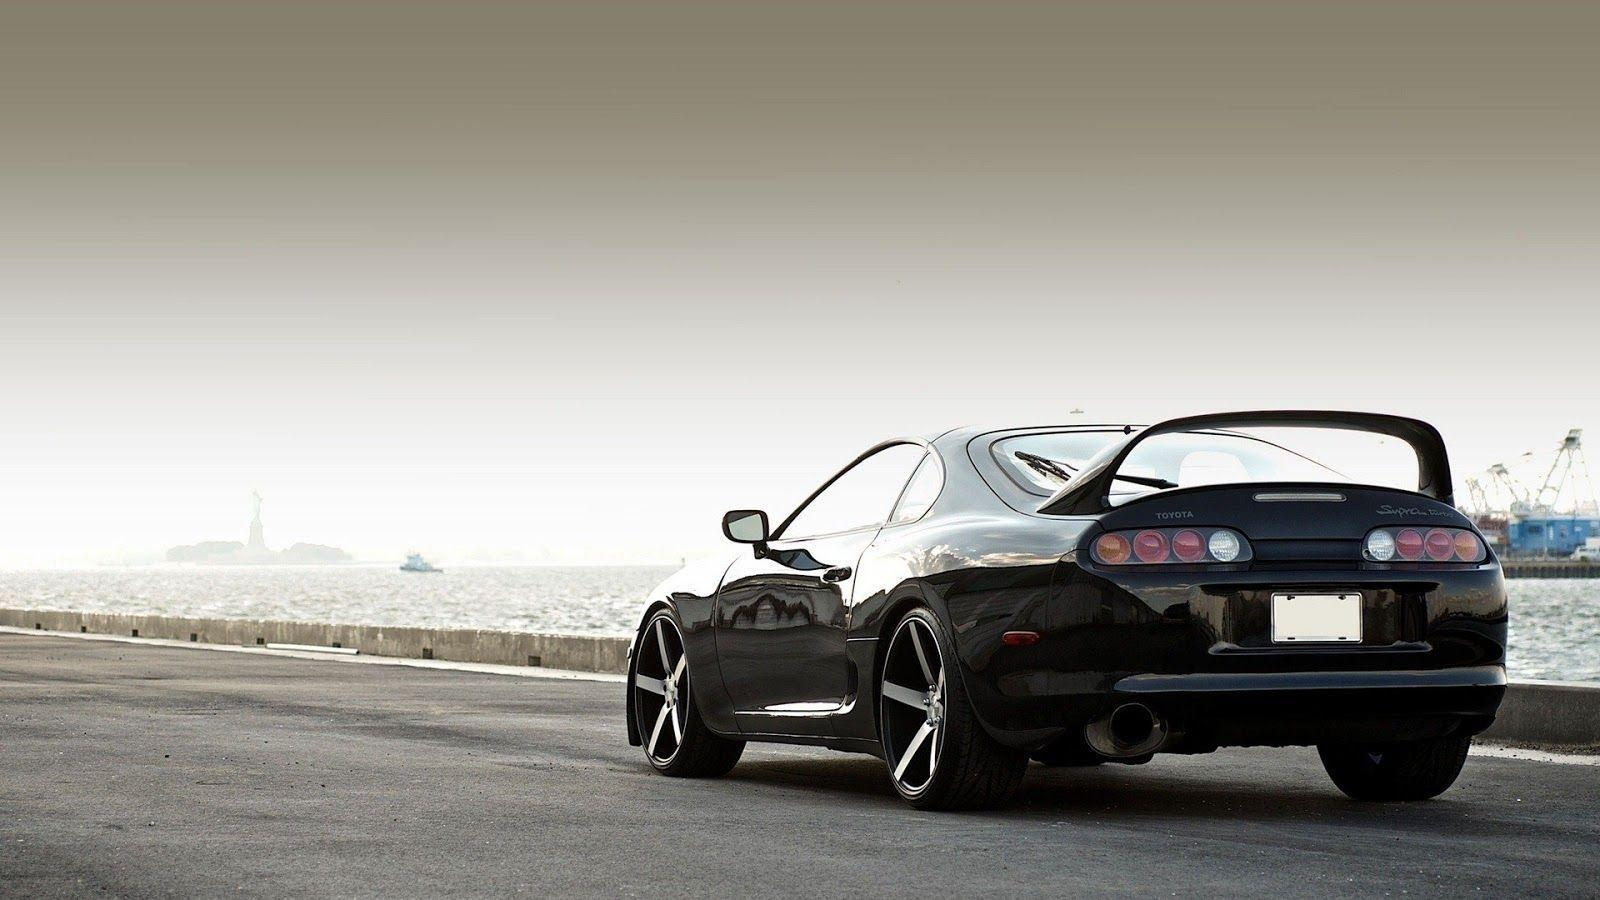 Toyota Supra Wallpaper 1920x1080: Toyota Supra Wallpapers